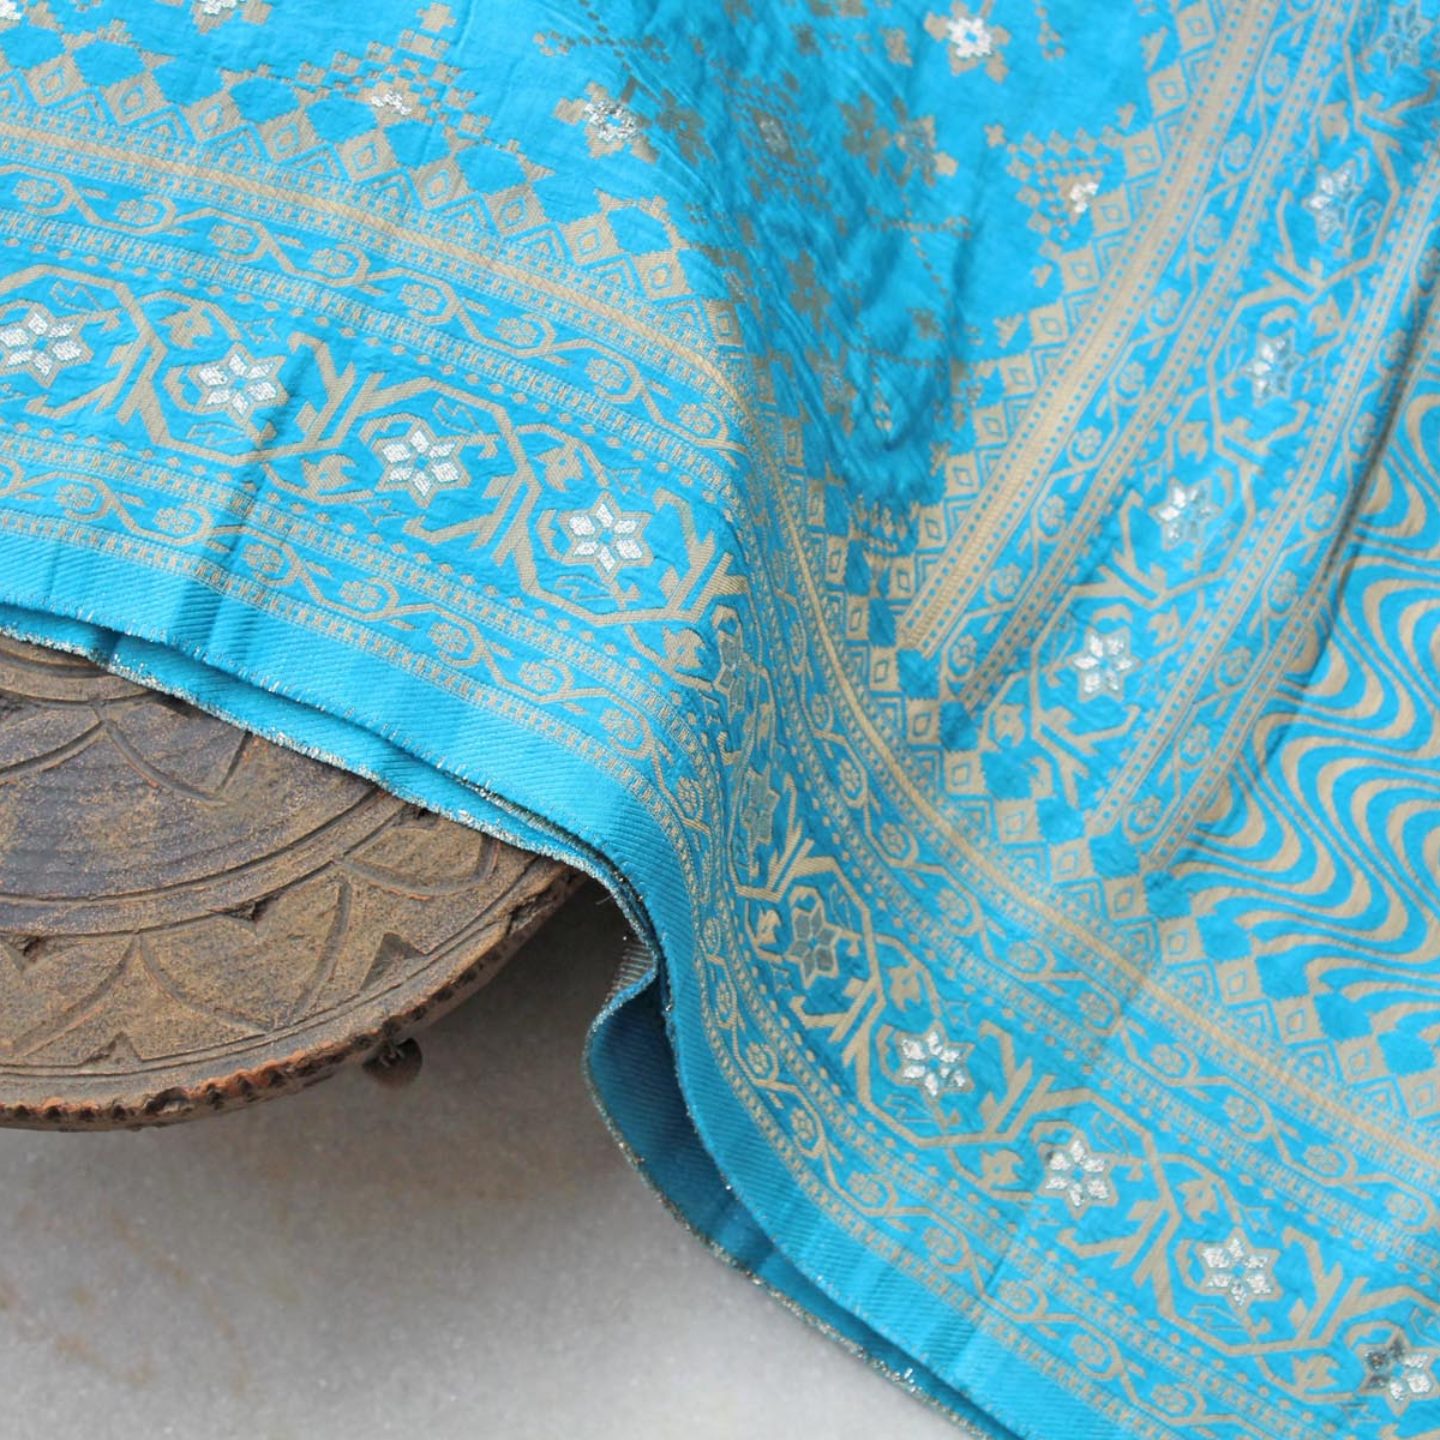 Blue Banarsi Brocade Indian Ethnic Dupatta